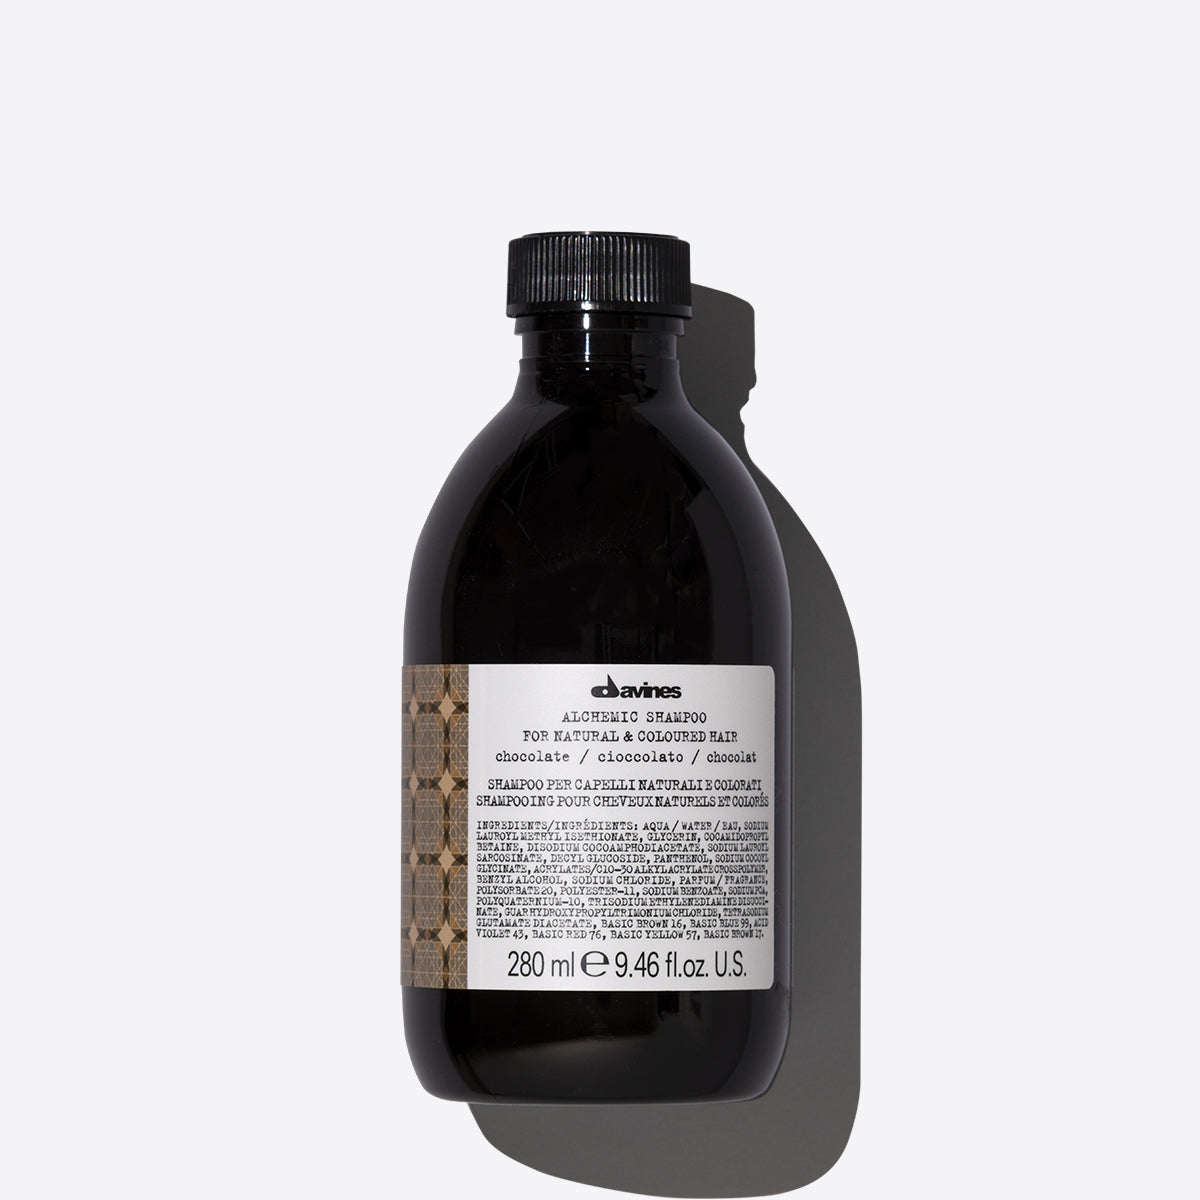 ALCHEMIC Shampoo Chocolate 1  280 ml / 9,47 fl.oz.Davines